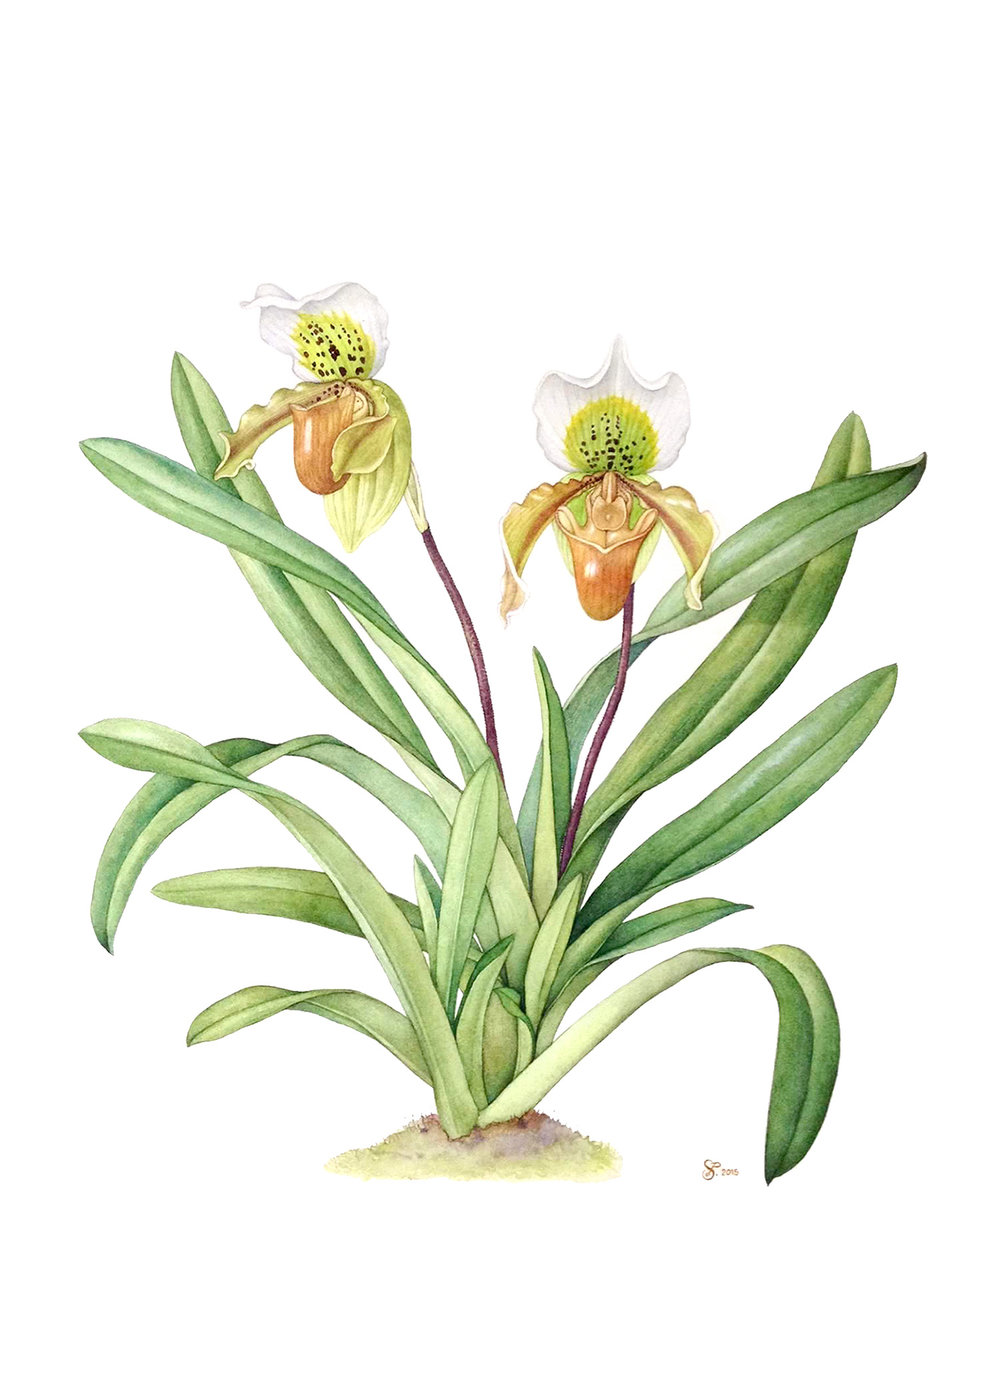 Paphiopedilum exul, watercolor on paper, Sunitsorn Pimpasalee ©Department of Plant Science, Mahidol University